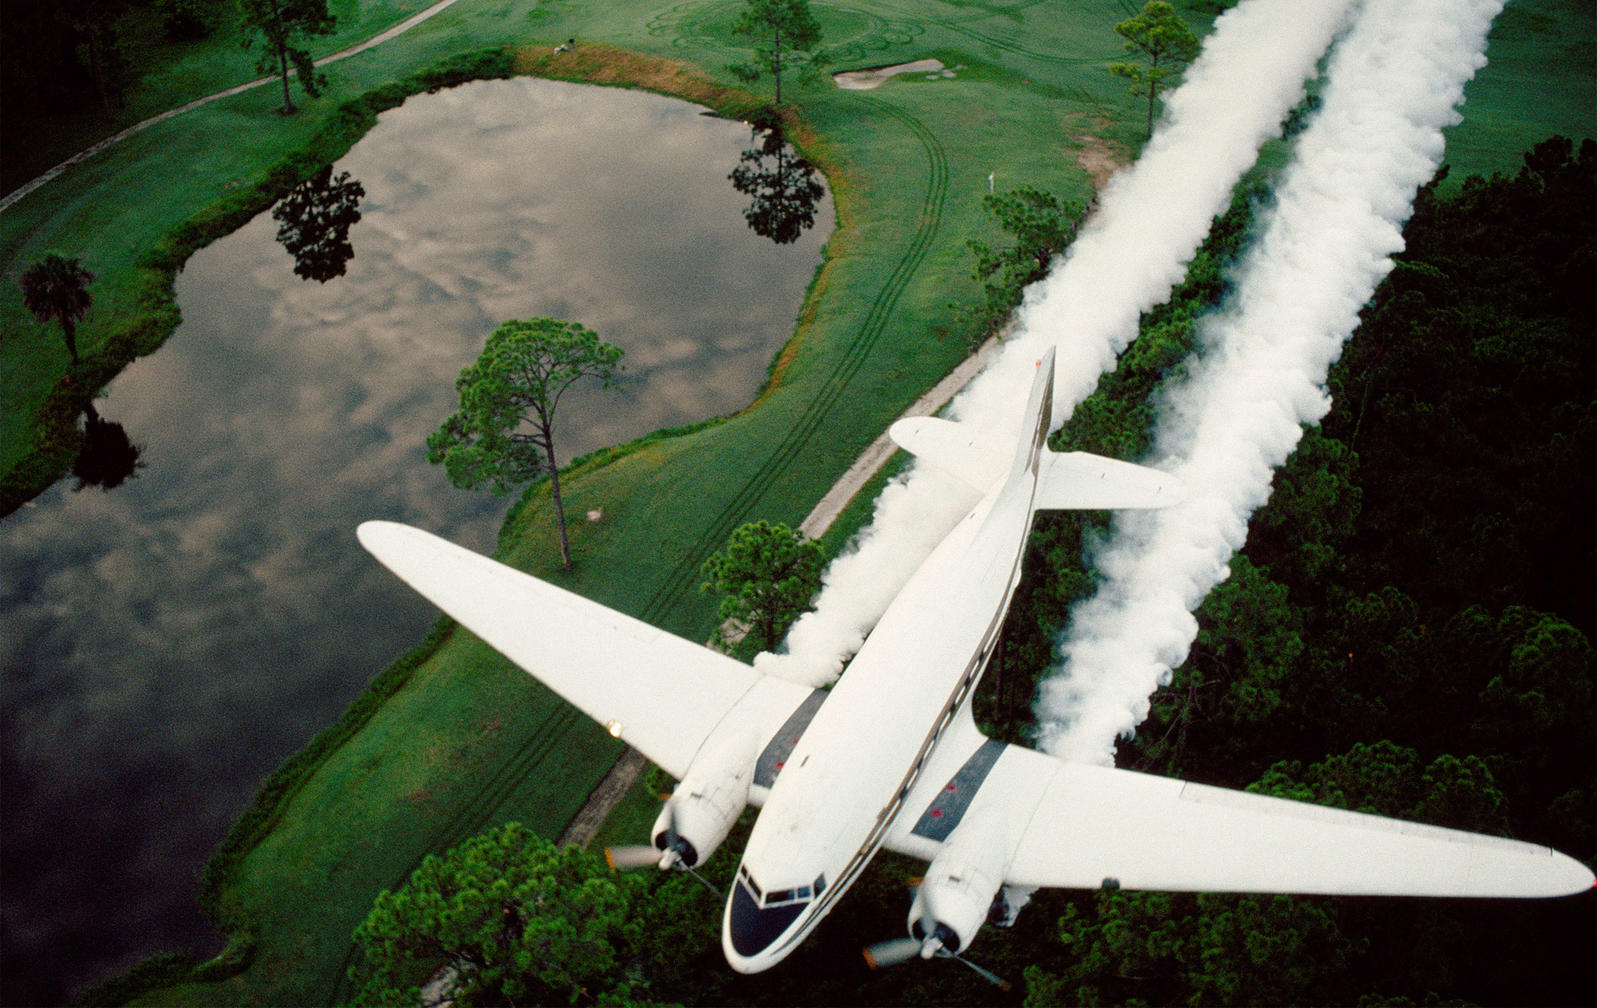 Spraying airplanes put out a mixture of diesel fuel and Malathion over Lee County, Florida Gulf Coast. Grant Heilman Photography/Alamy